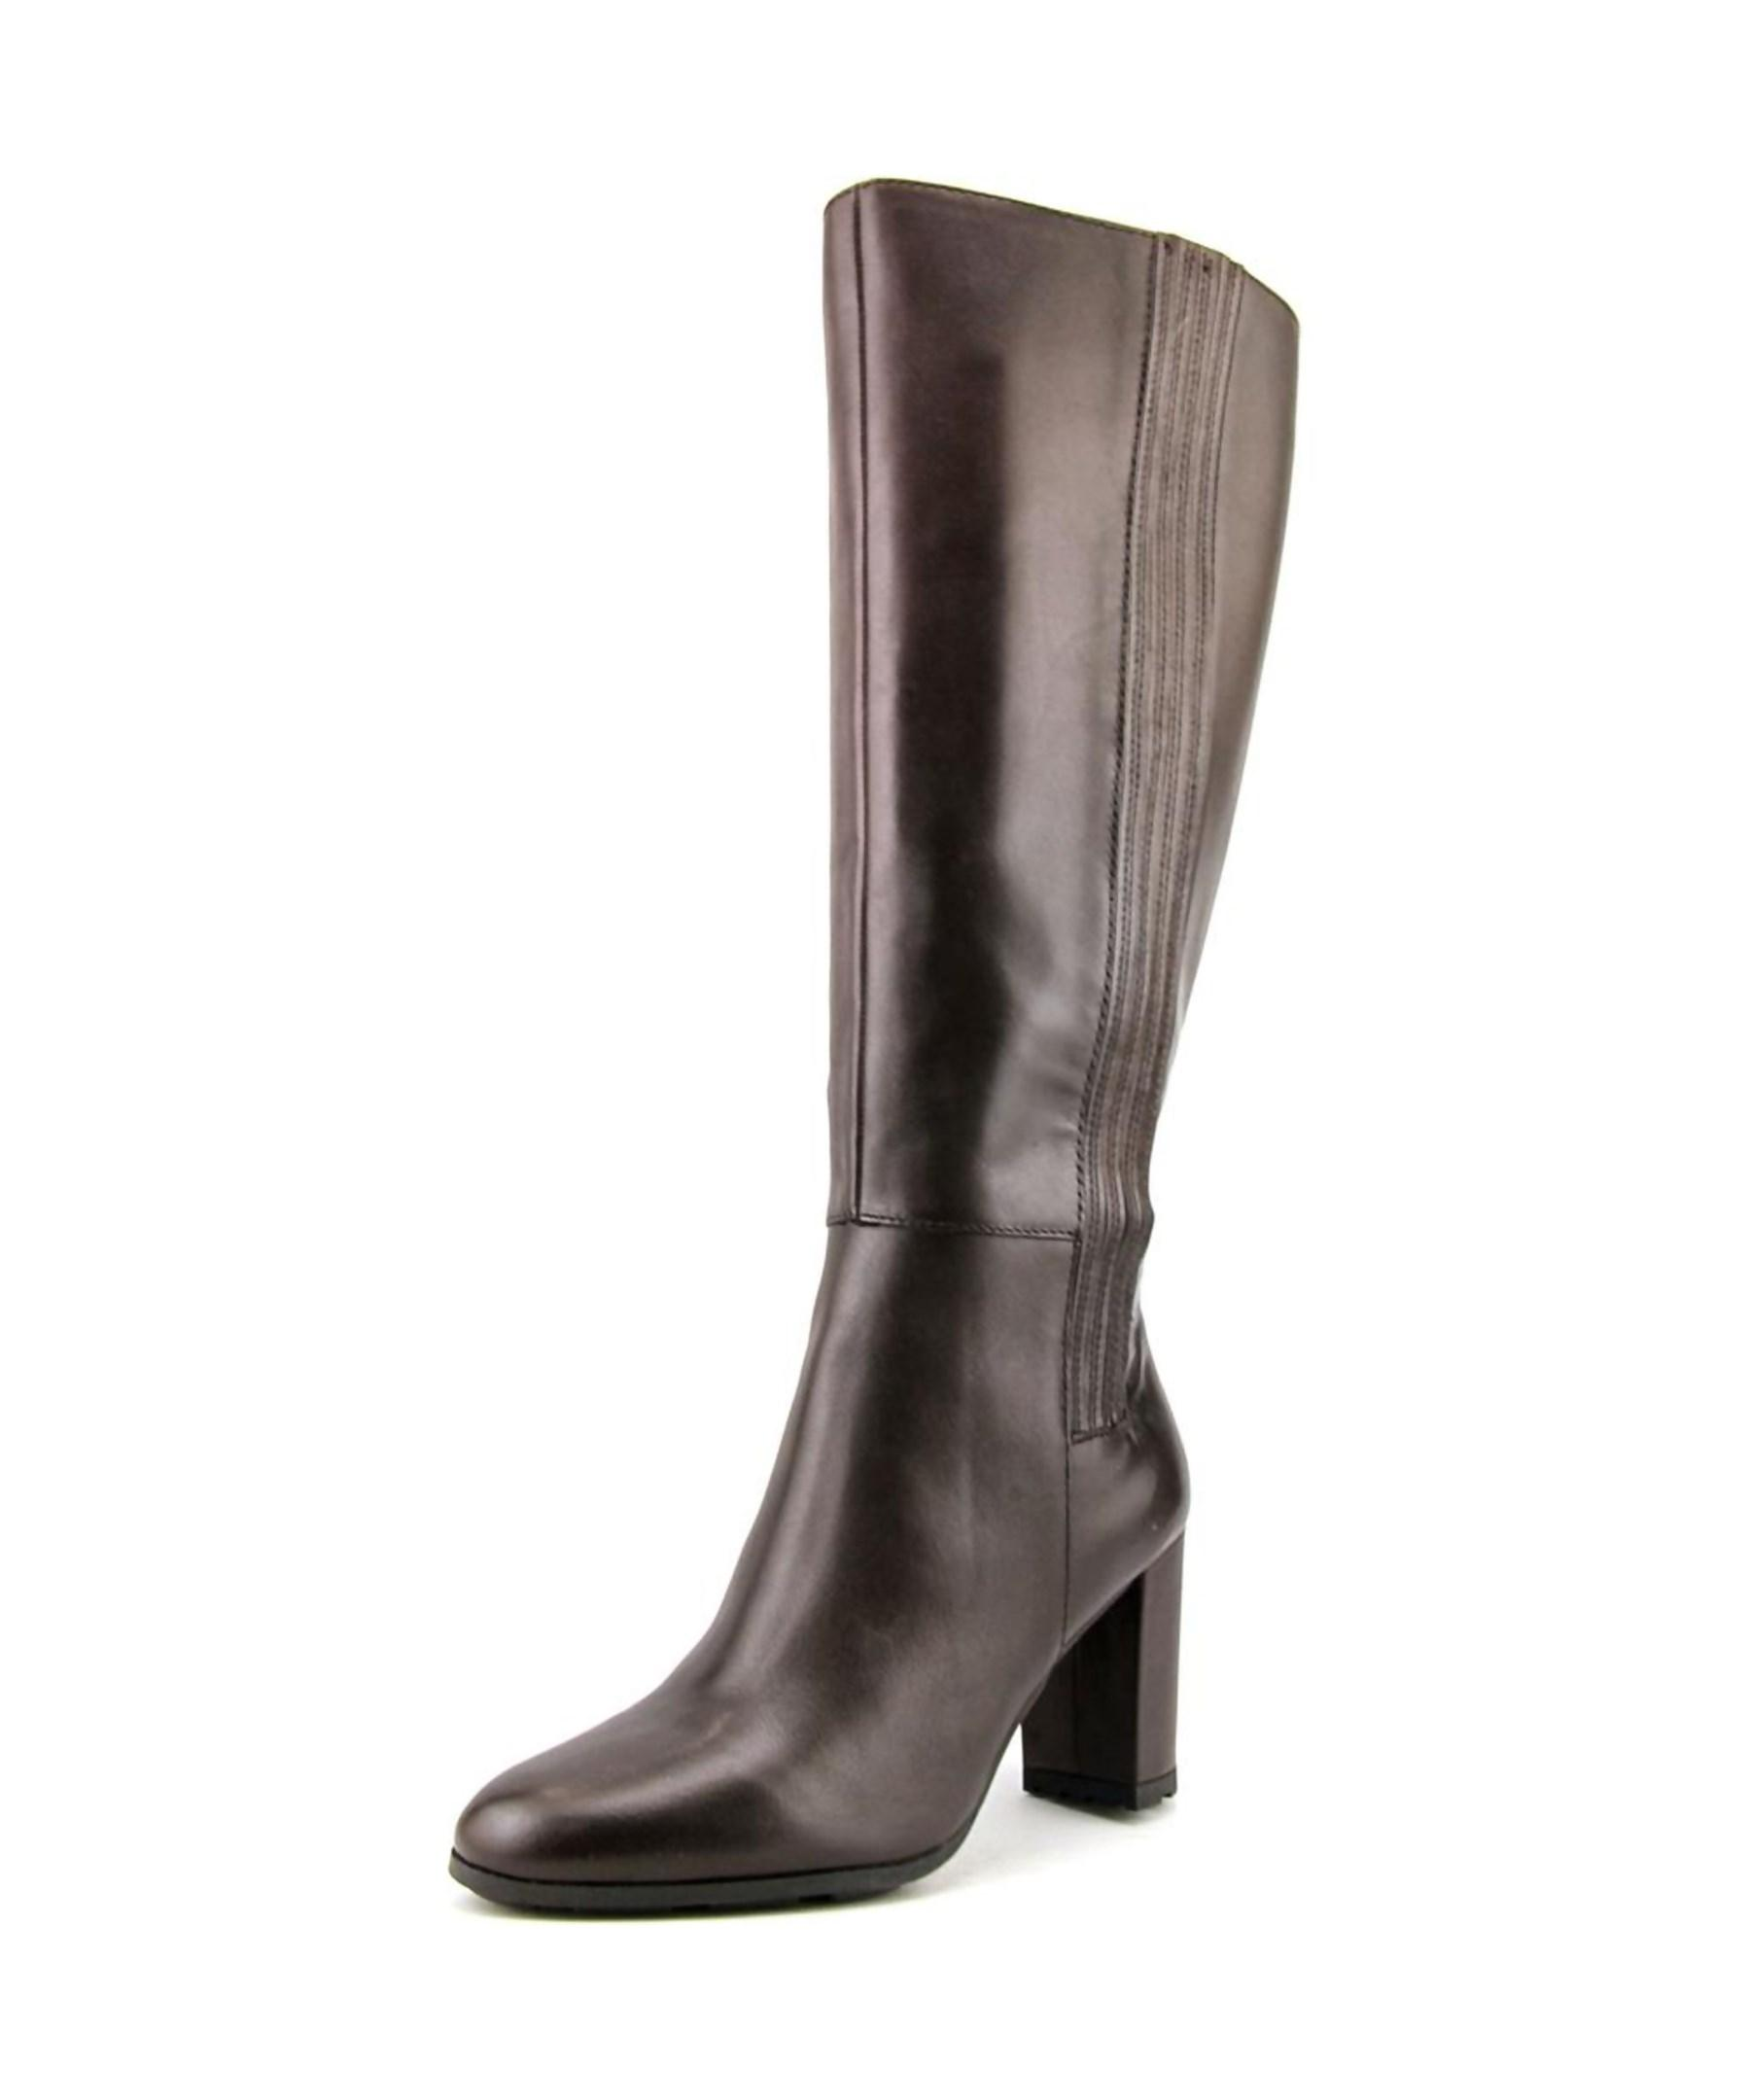 Shop for narrow calf boots from finest collection of skinny and slim calf boots. Available in David Tate, Etienne Aigner, Naturalizer, Ros Hommerson and many brands in different colors and styles.